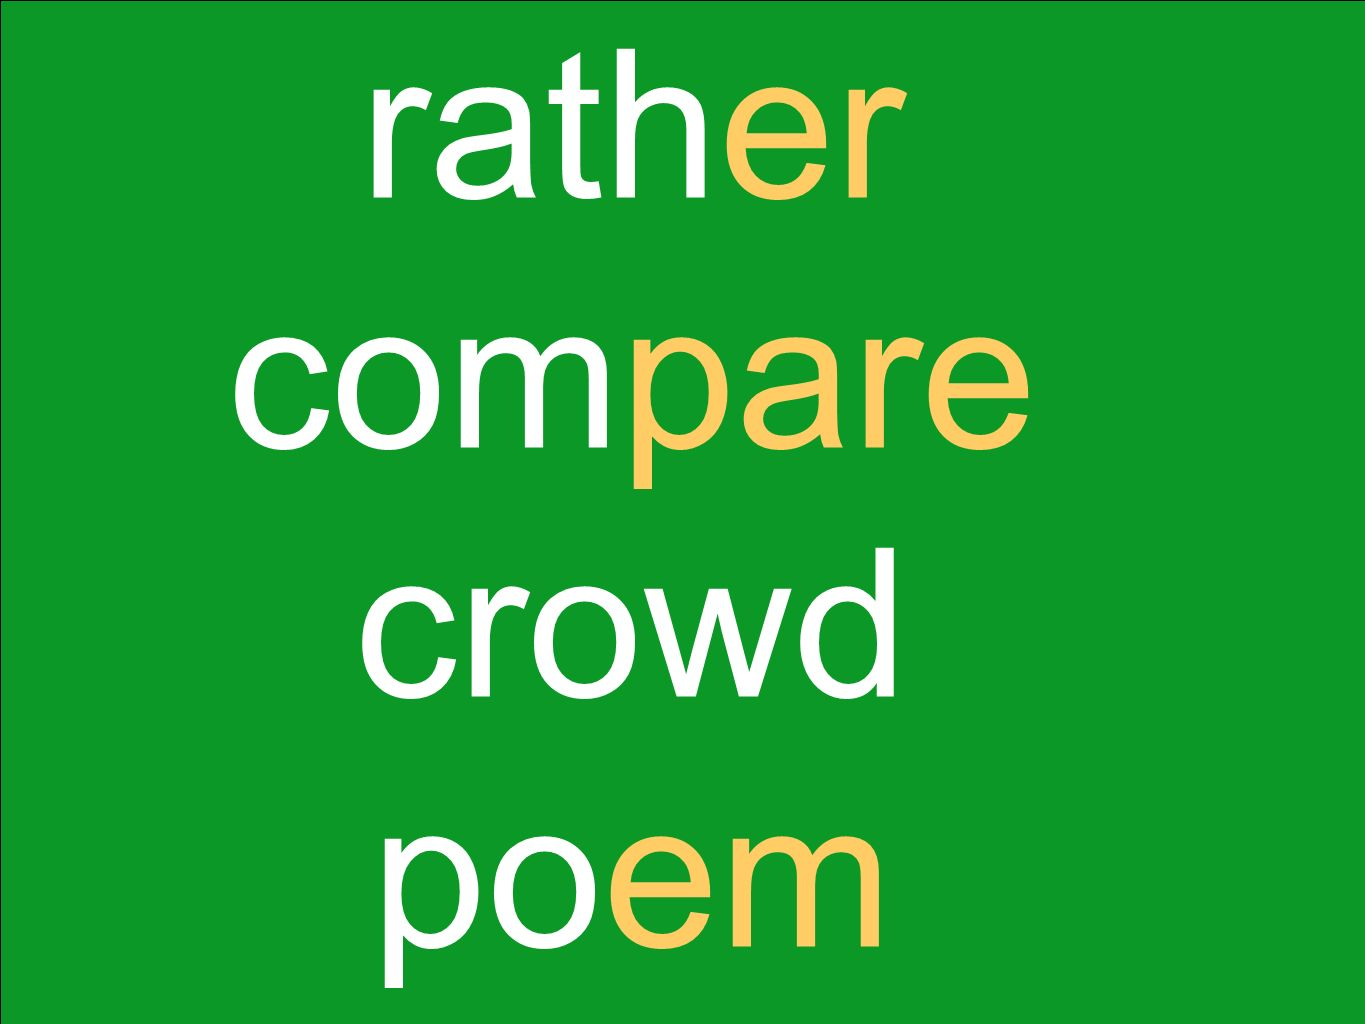 rather compare crowd poem